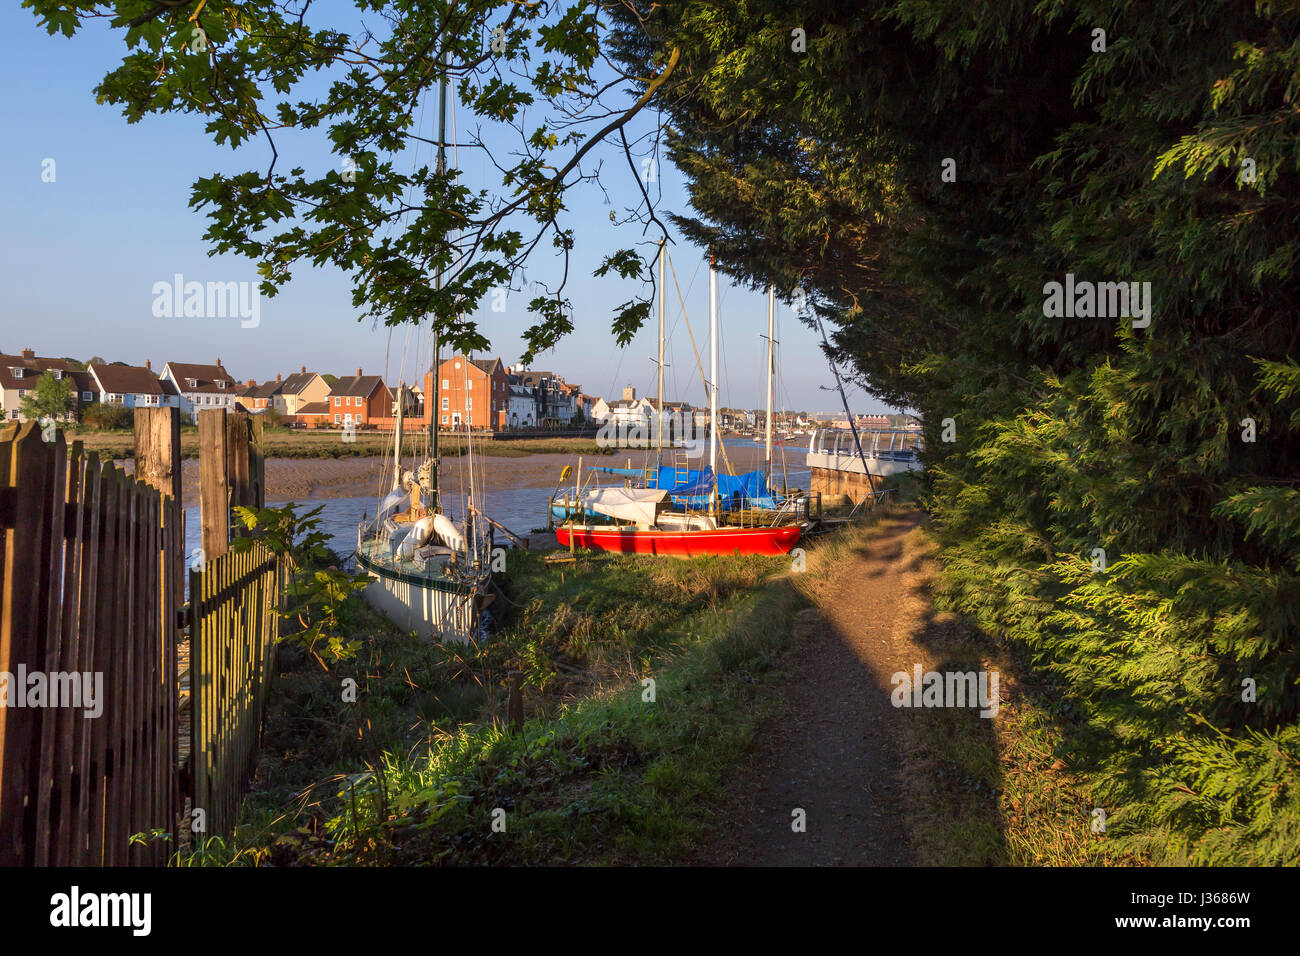 WIVENHOE NEAR COLCHESTER, AS VIEWED FROM ROWHEDGE ACROSS THE RIVER COLNE. - Stock Image